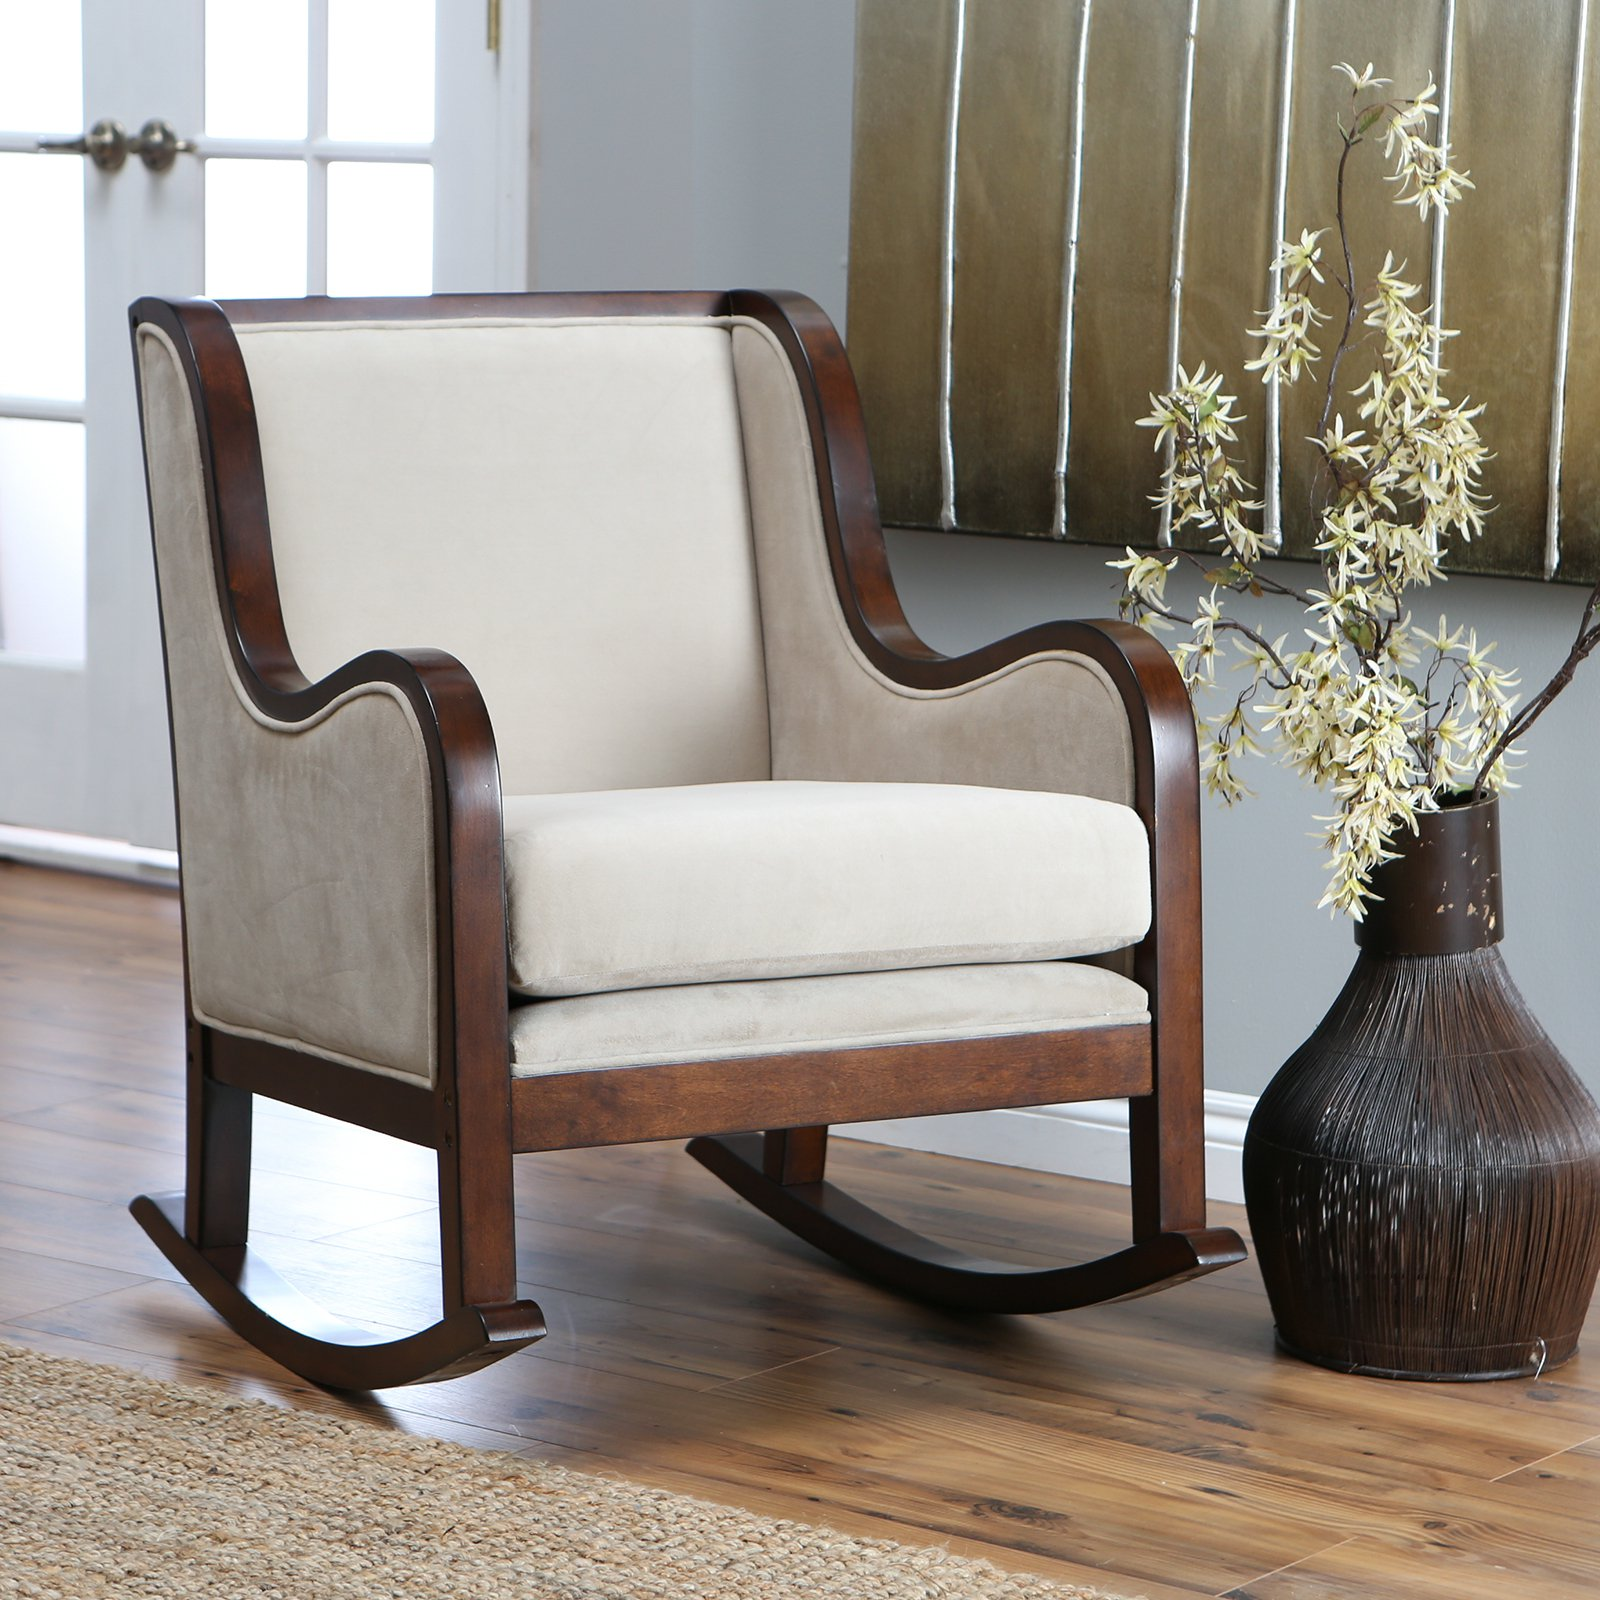 Image of: Furniture Upholstered Rocking Chairs